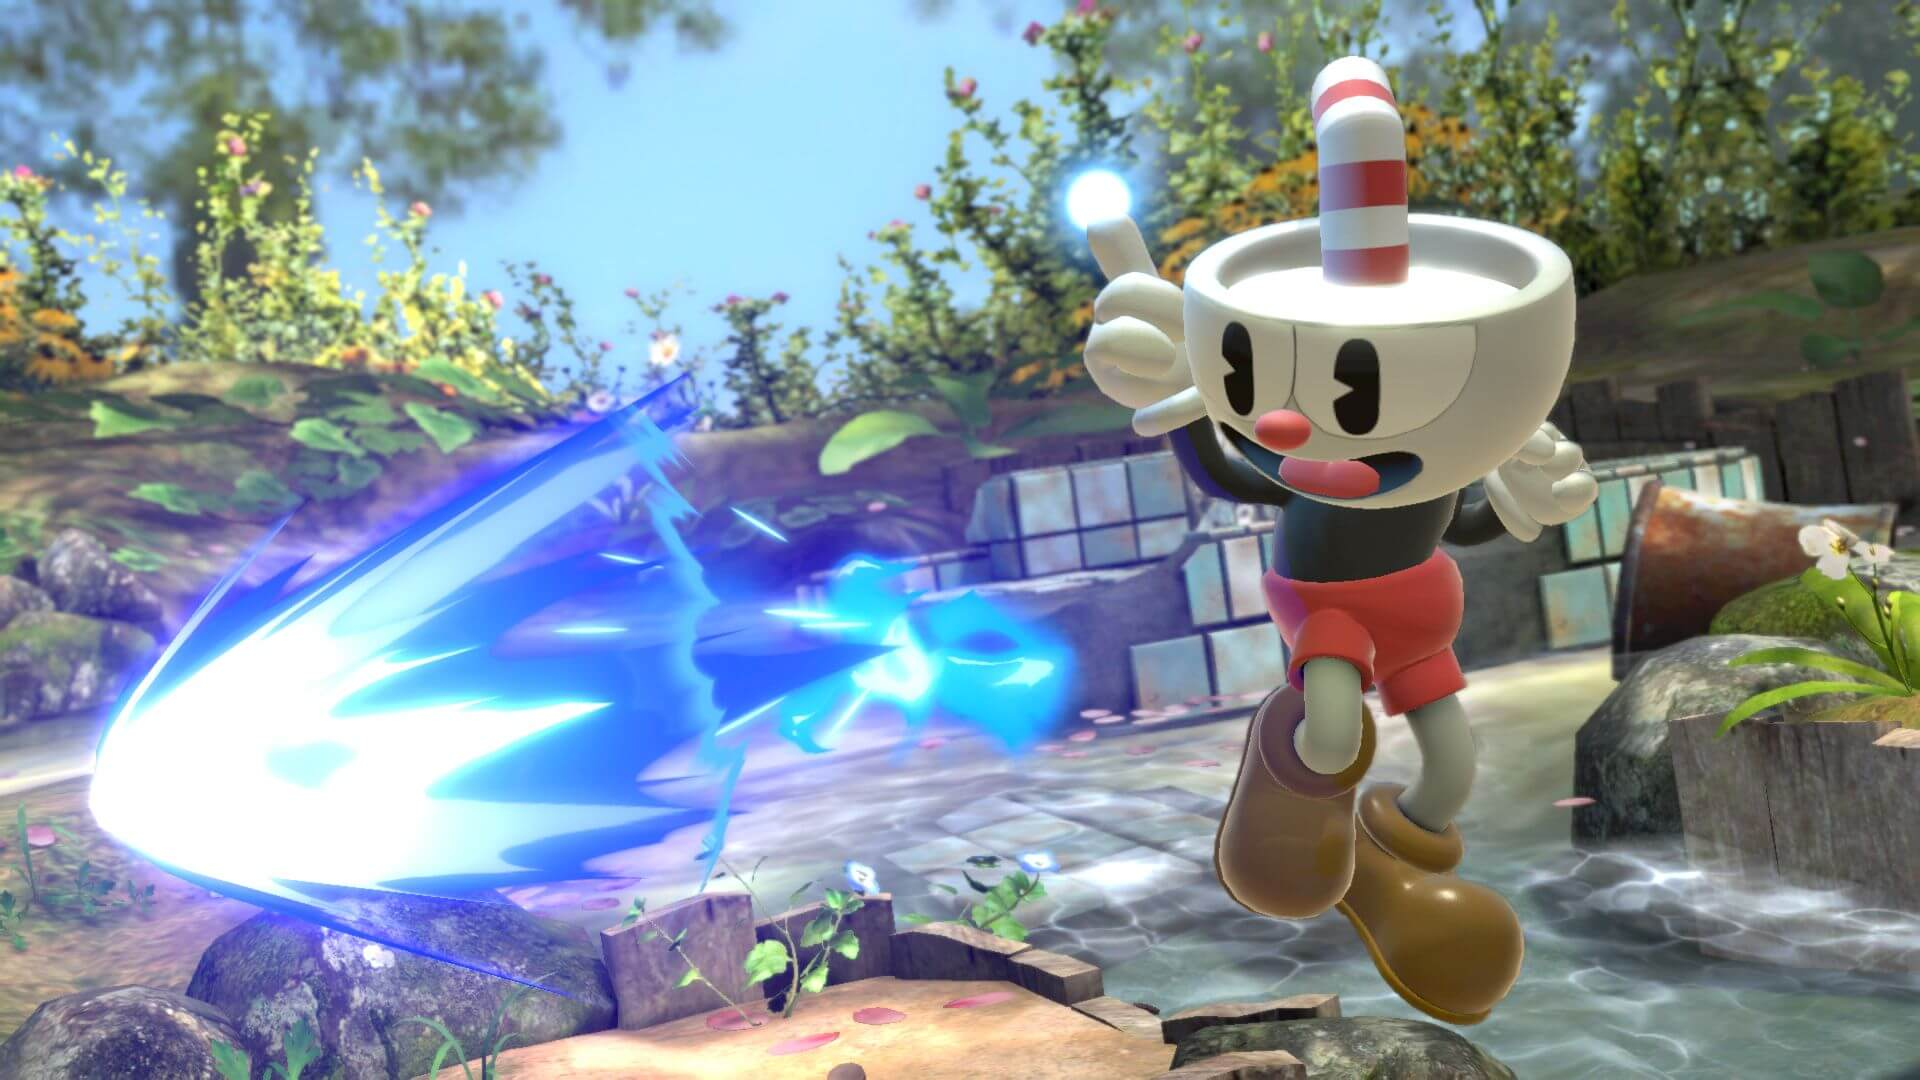 Warframe and Cuphead Spirits now available to all in Smash Ultimate